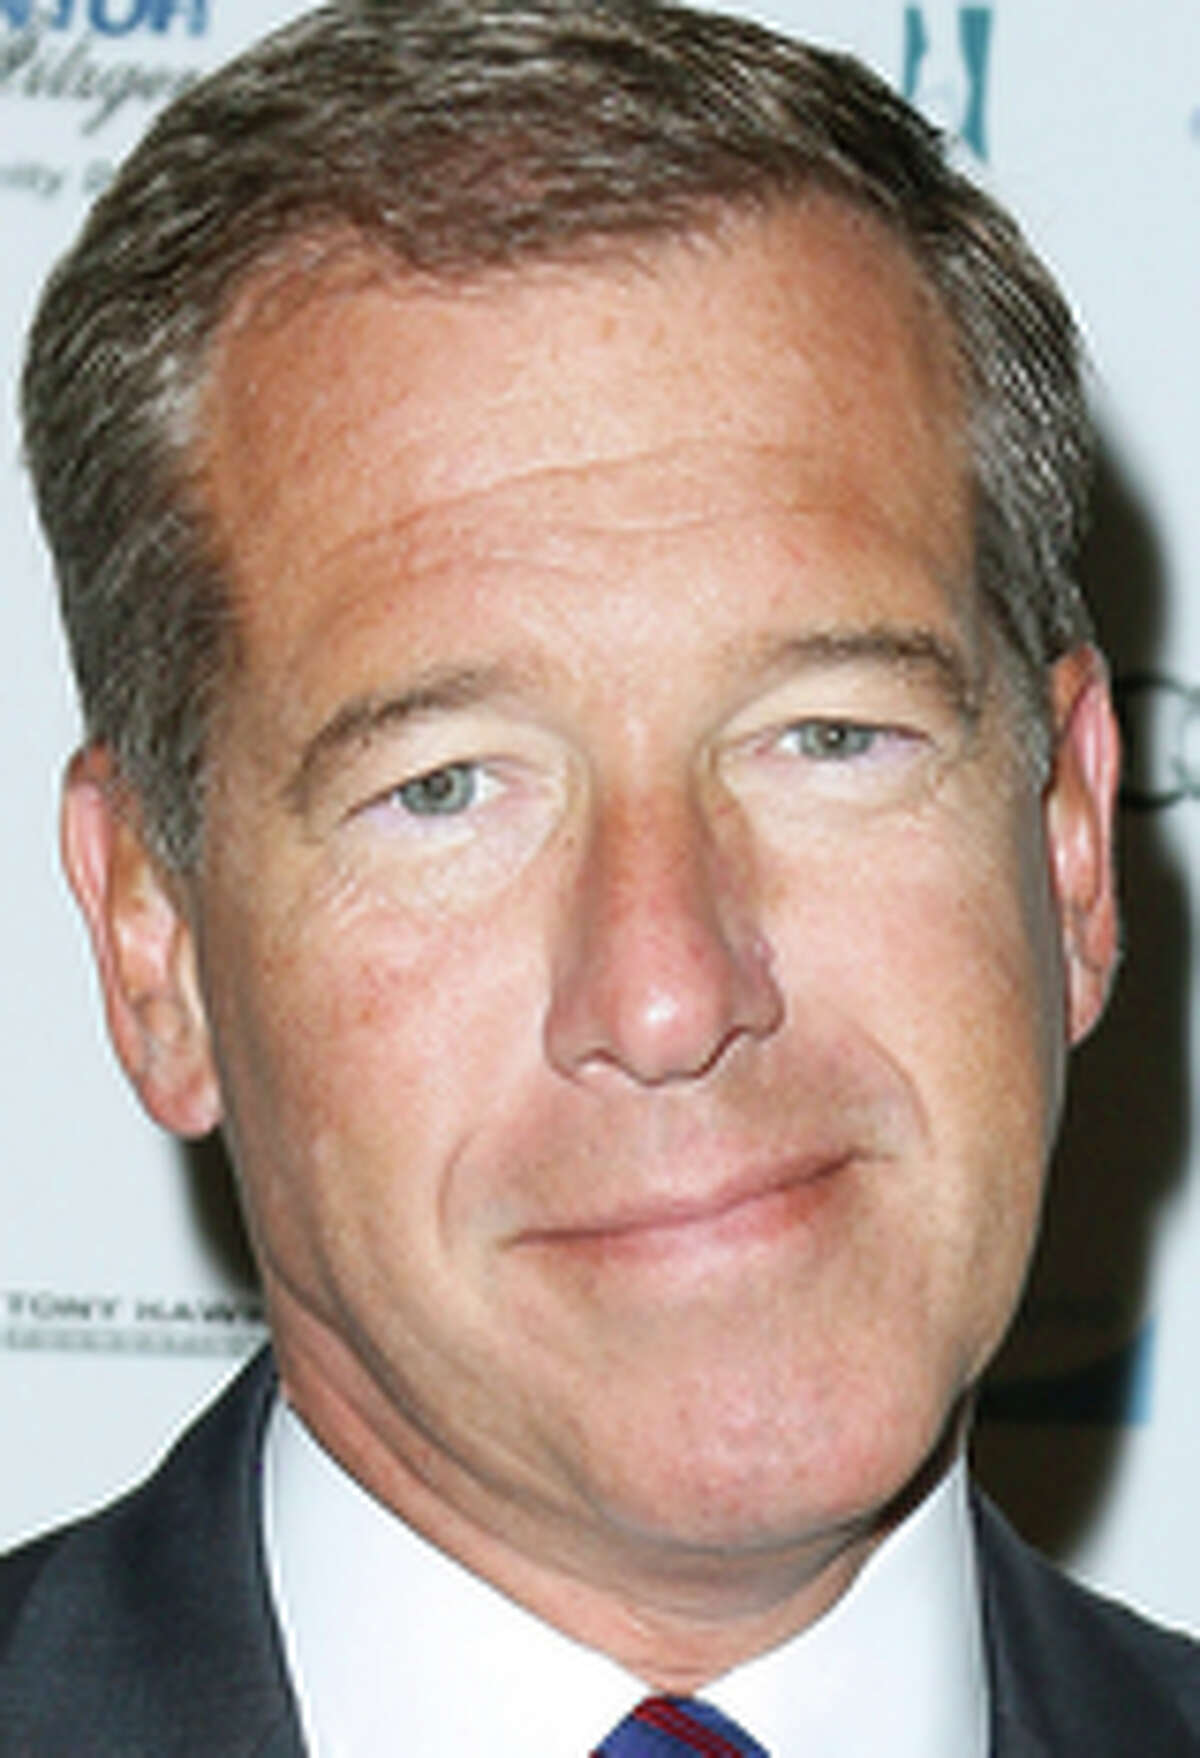 Brian Williams seemed reliable, thought ful and cool- headed.